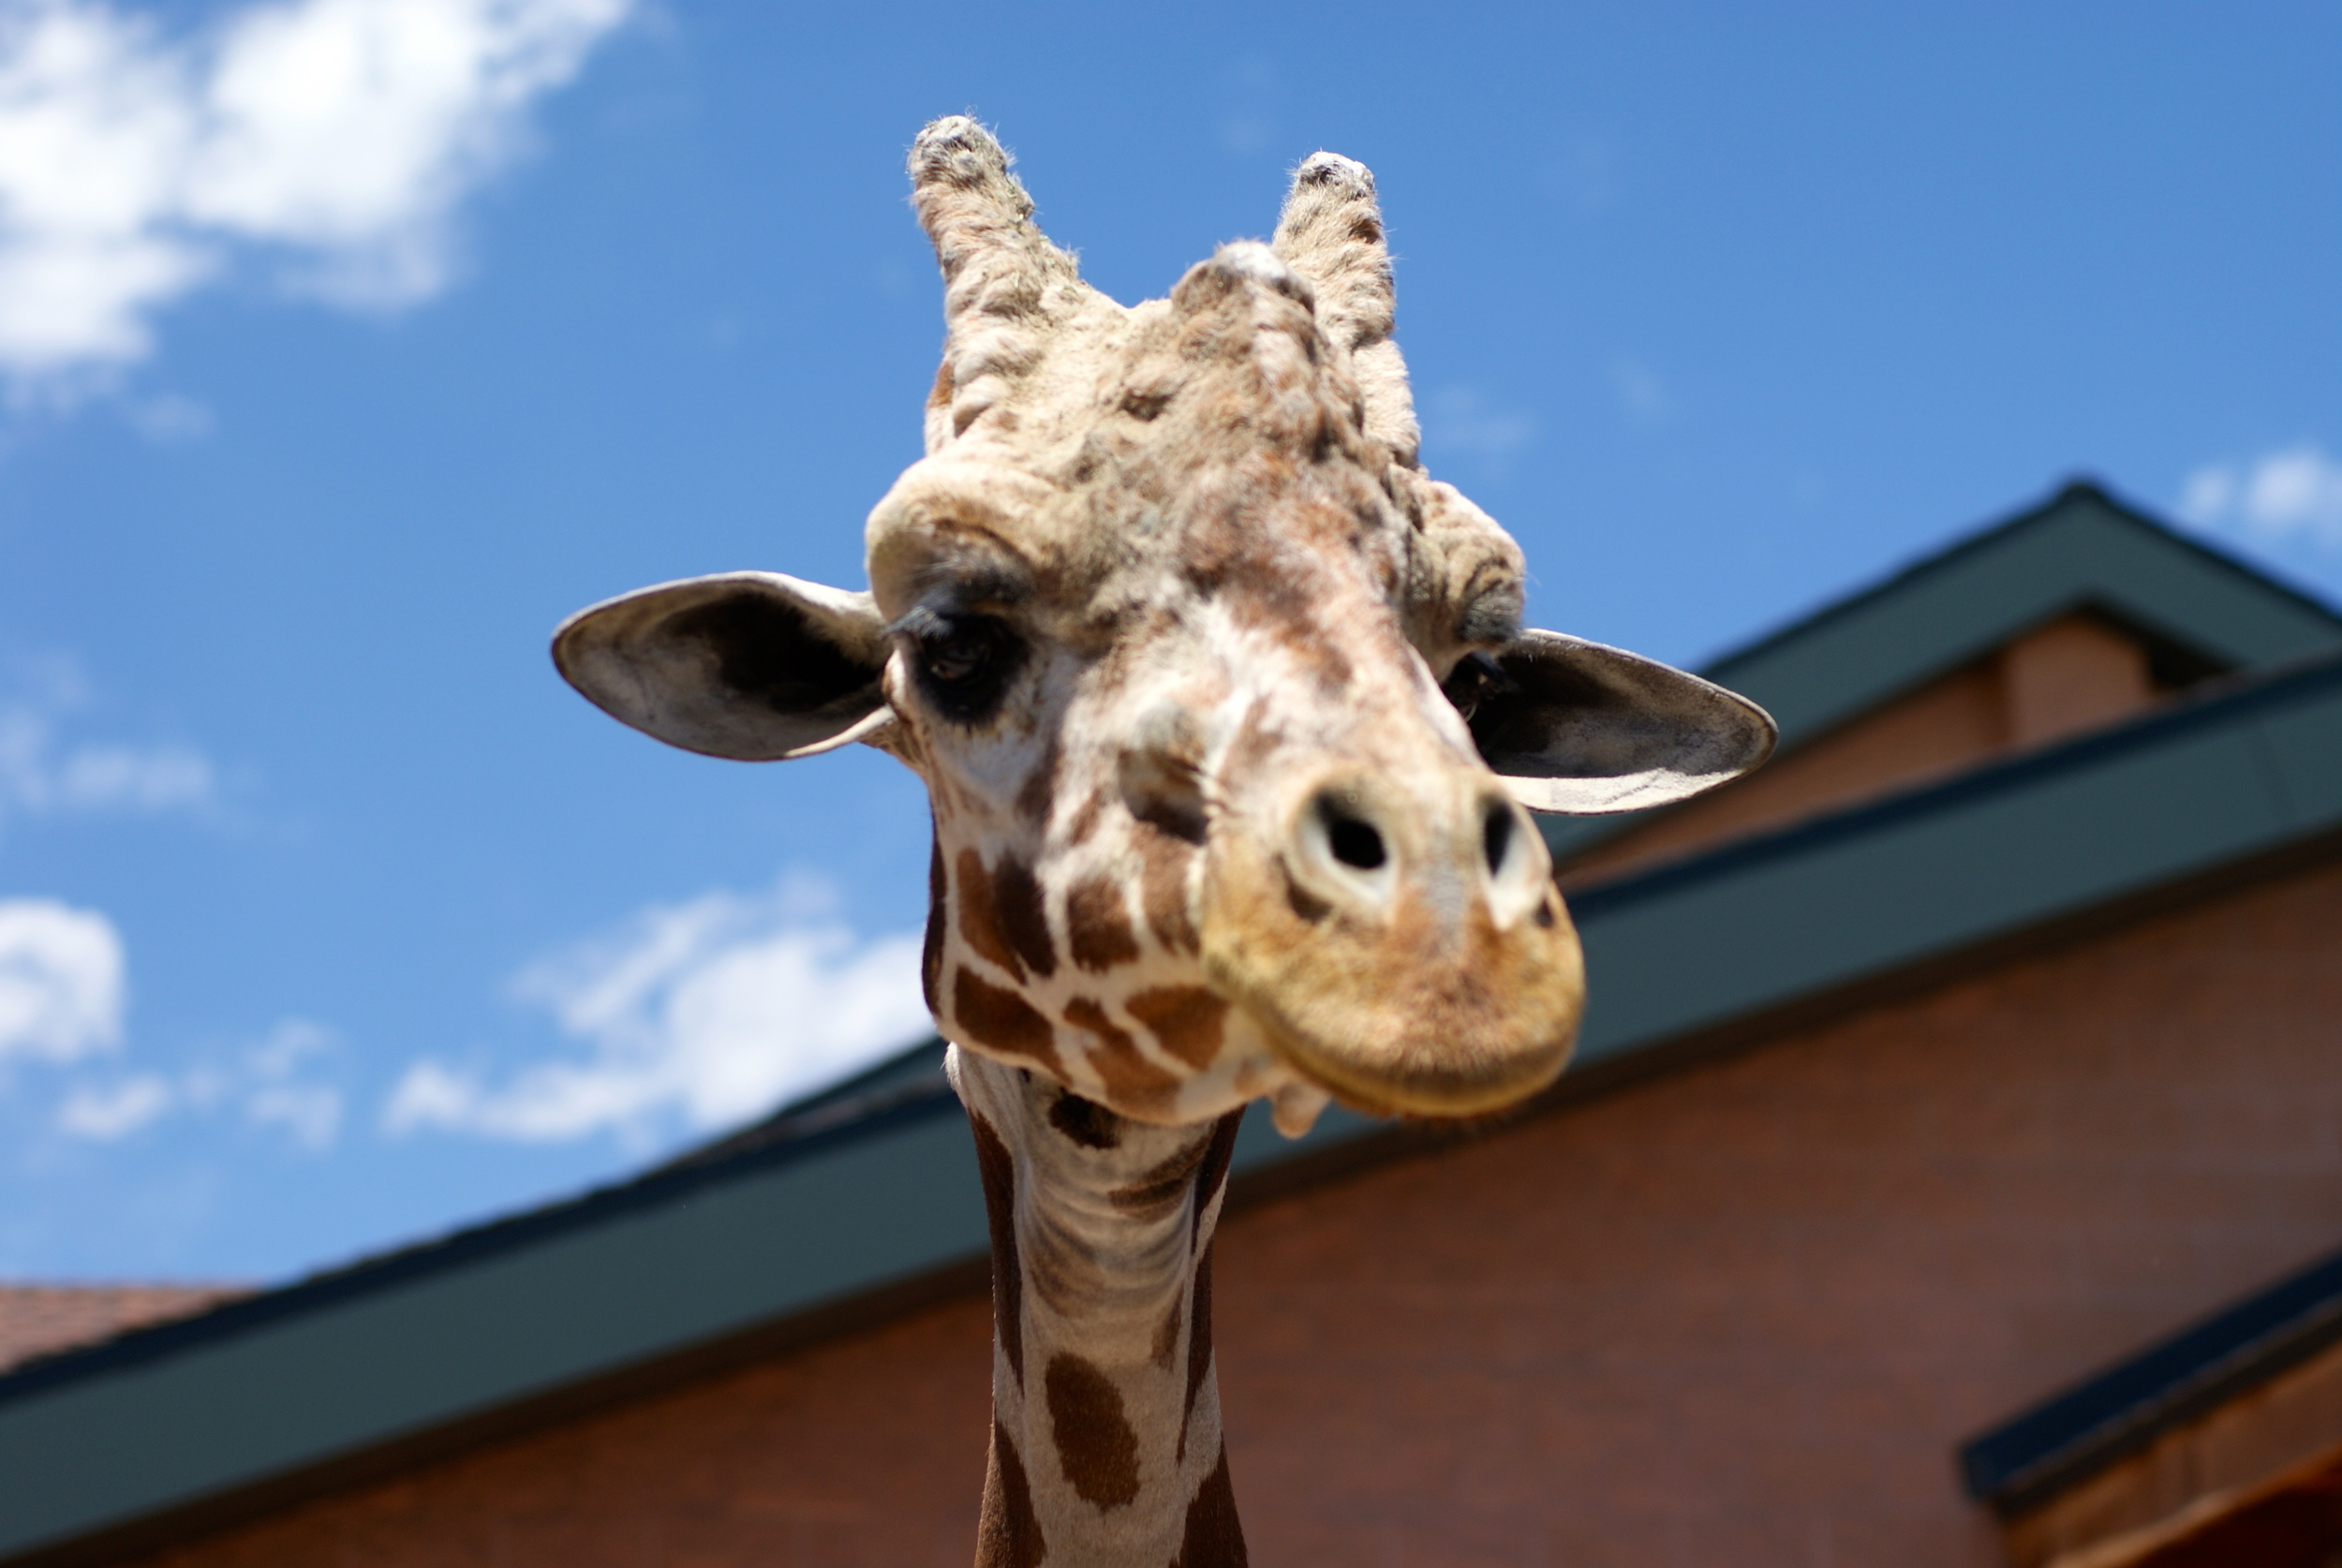 """Some times you just need a giraffe to look you in the eye and say, """"Go for it!"""""""